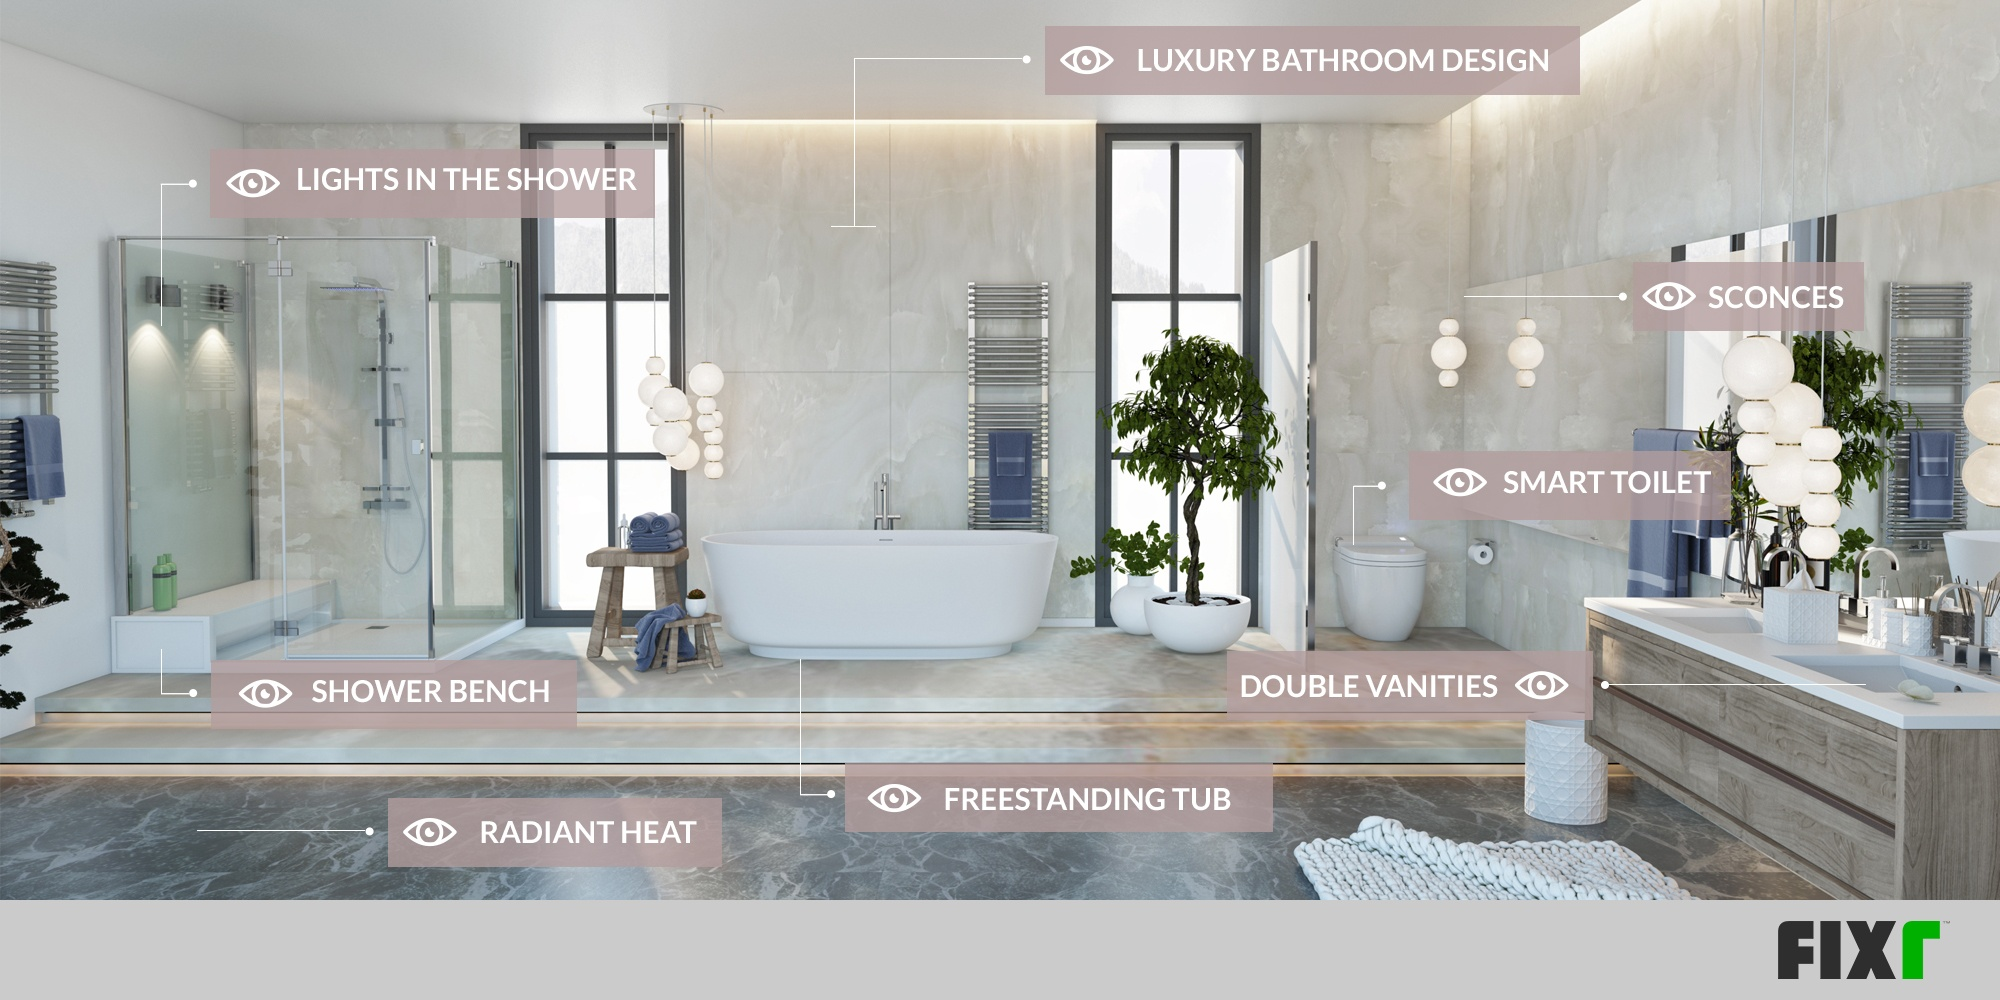 2017 Bathroom Trends Unveiled: Smart Devices Are the Next Big Thing